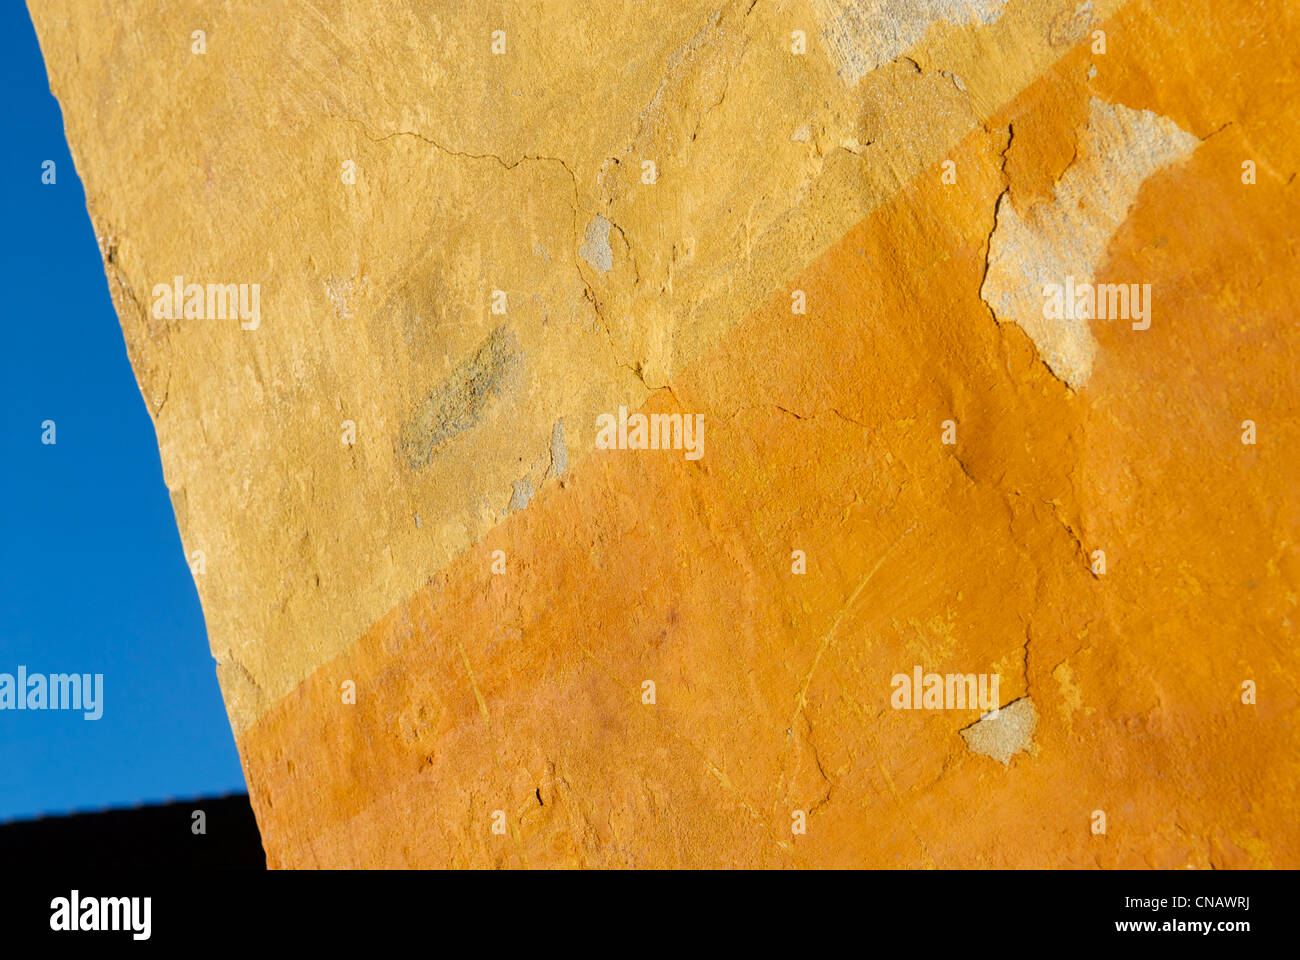 WORN NYBODER WALL - Stock Image